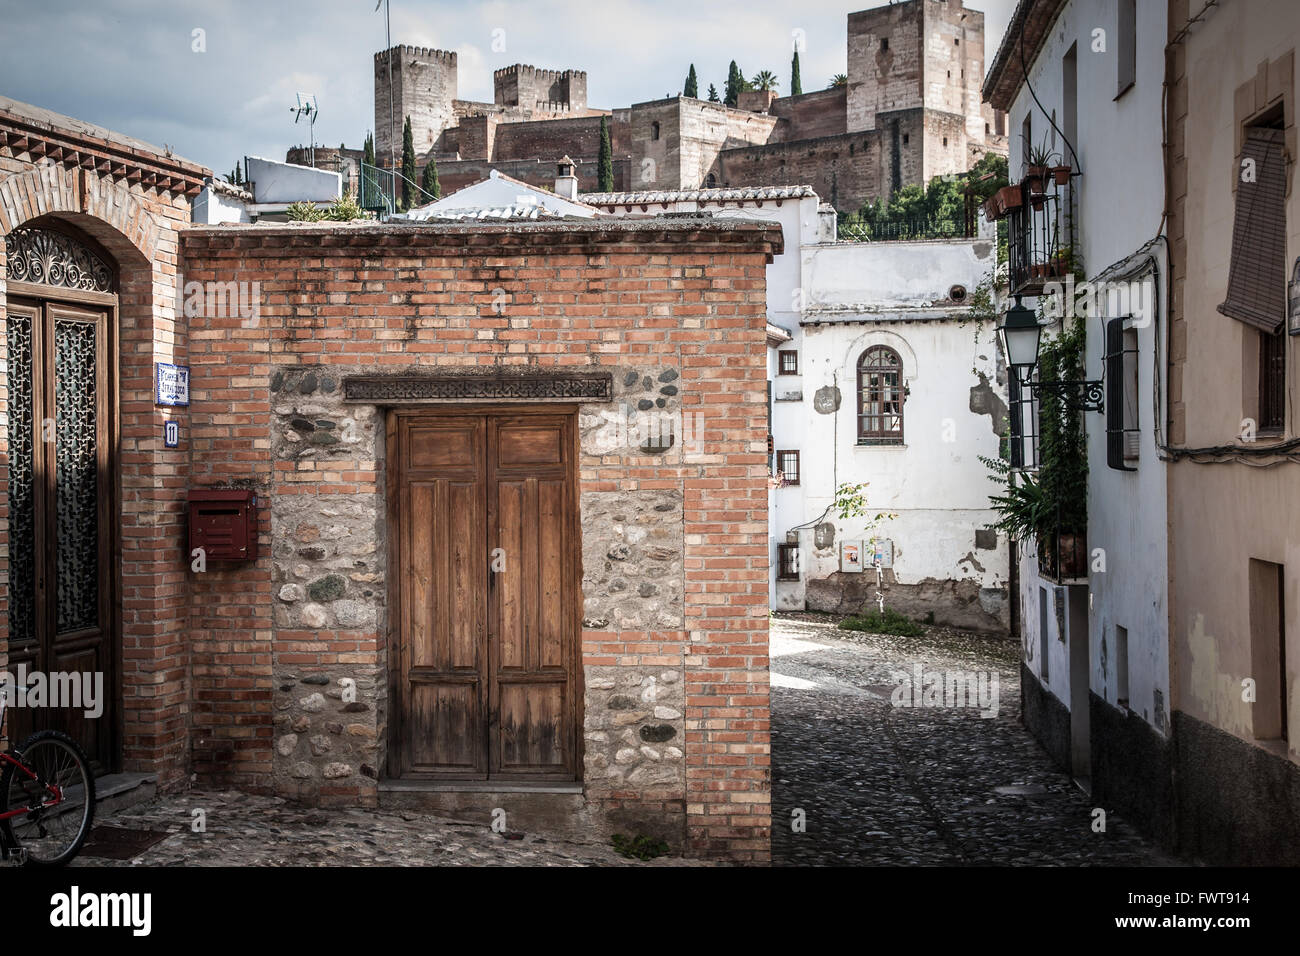 View of Alhambra castle in background from Albacin district in Granada city, Spain - Stock Image